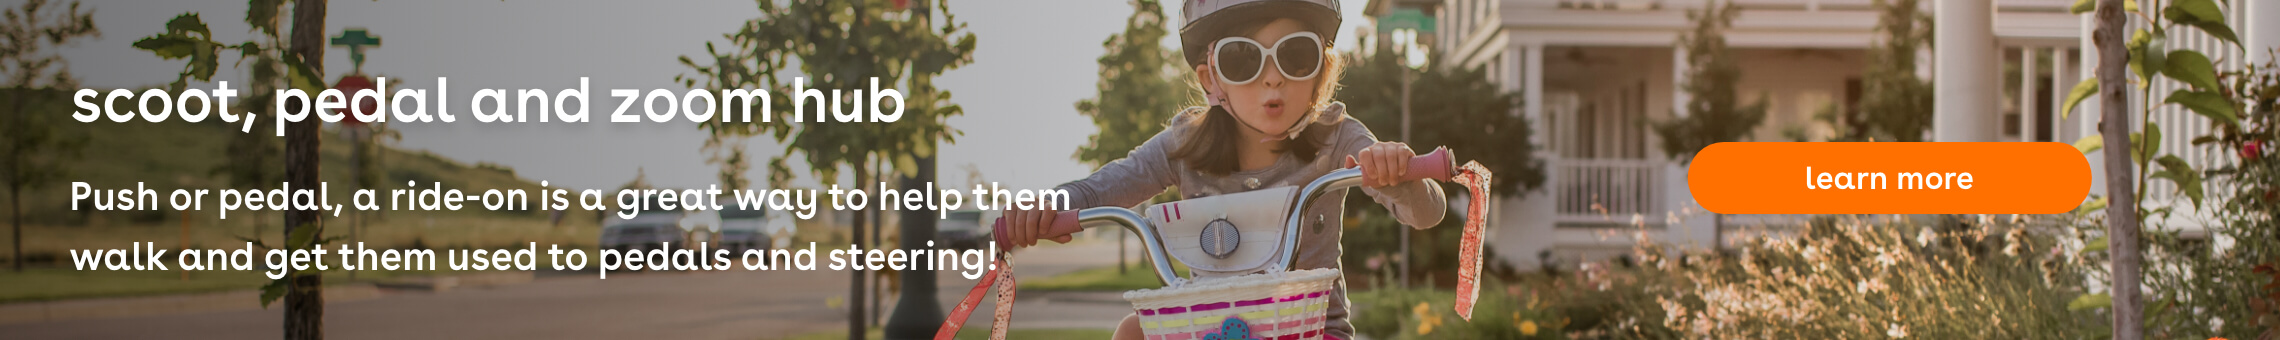 push and pedal ride-on buying guide for toddlers